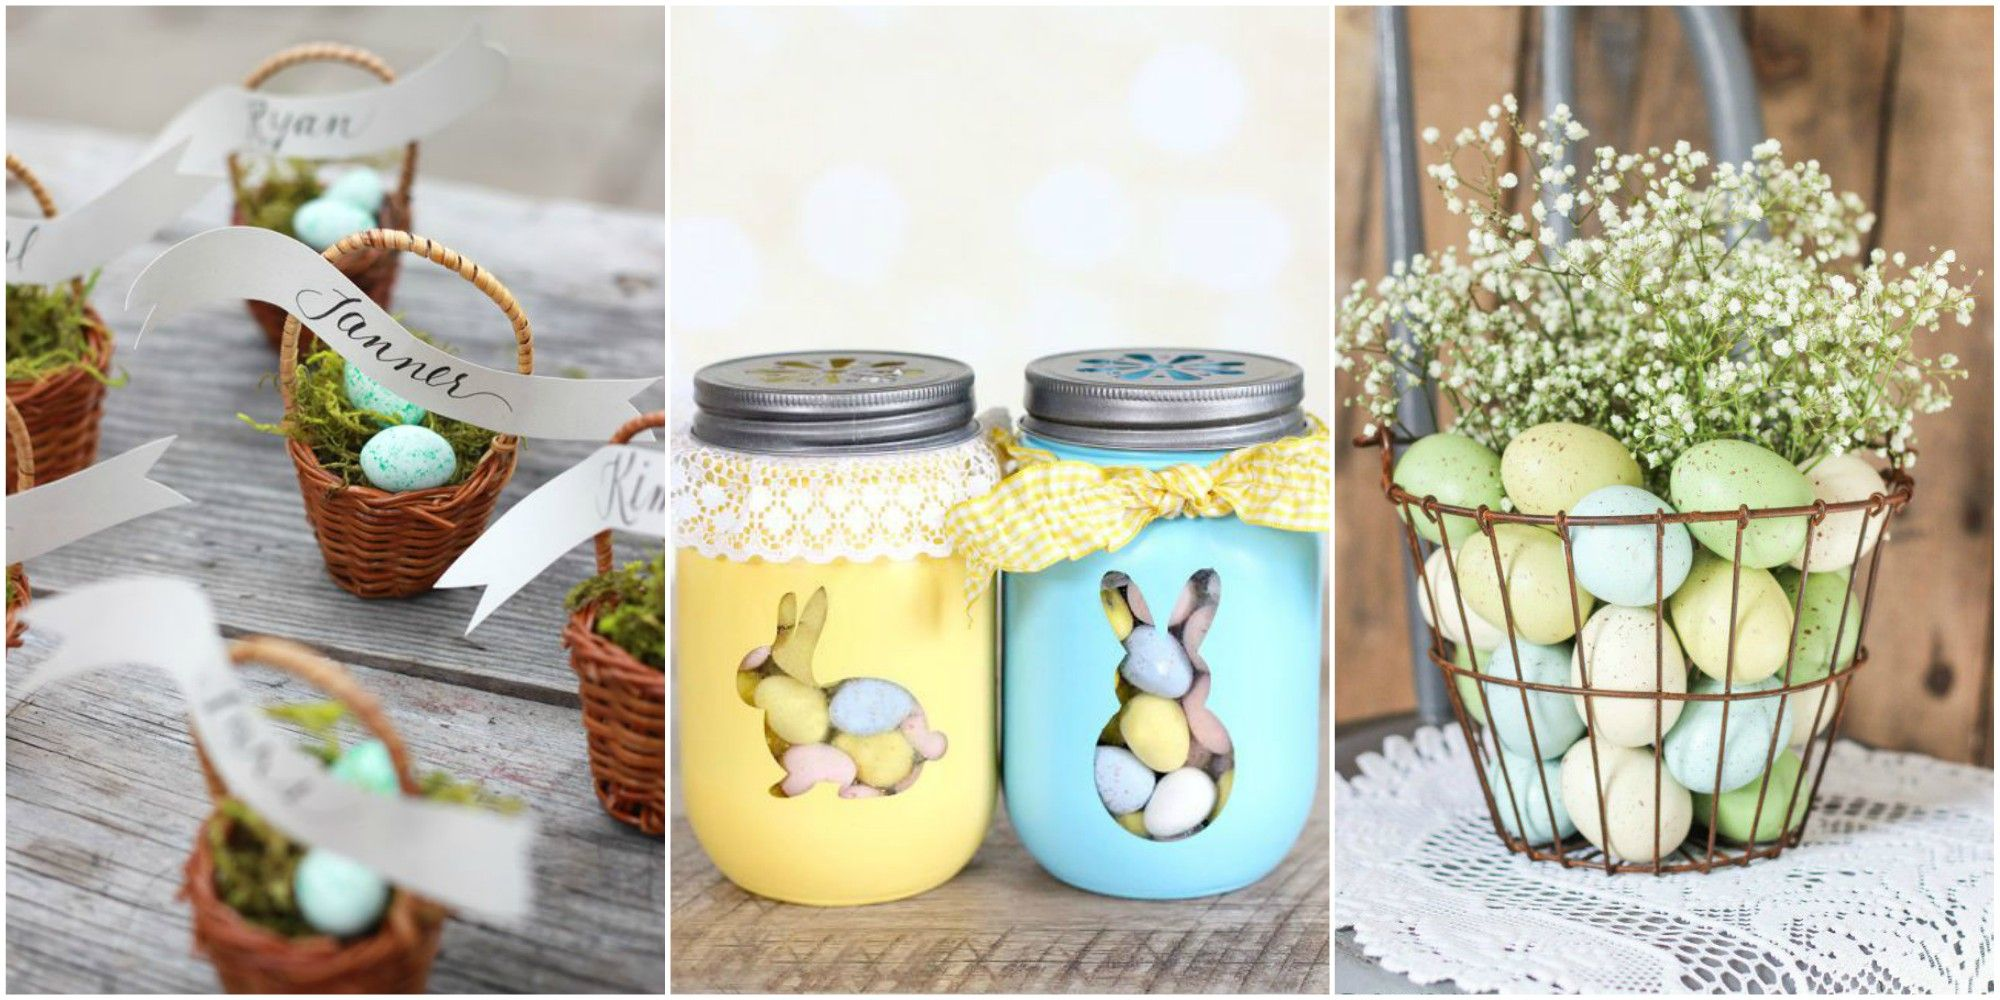 Best 35 Best Easter Party Ideas Decorations Food And Games This Month